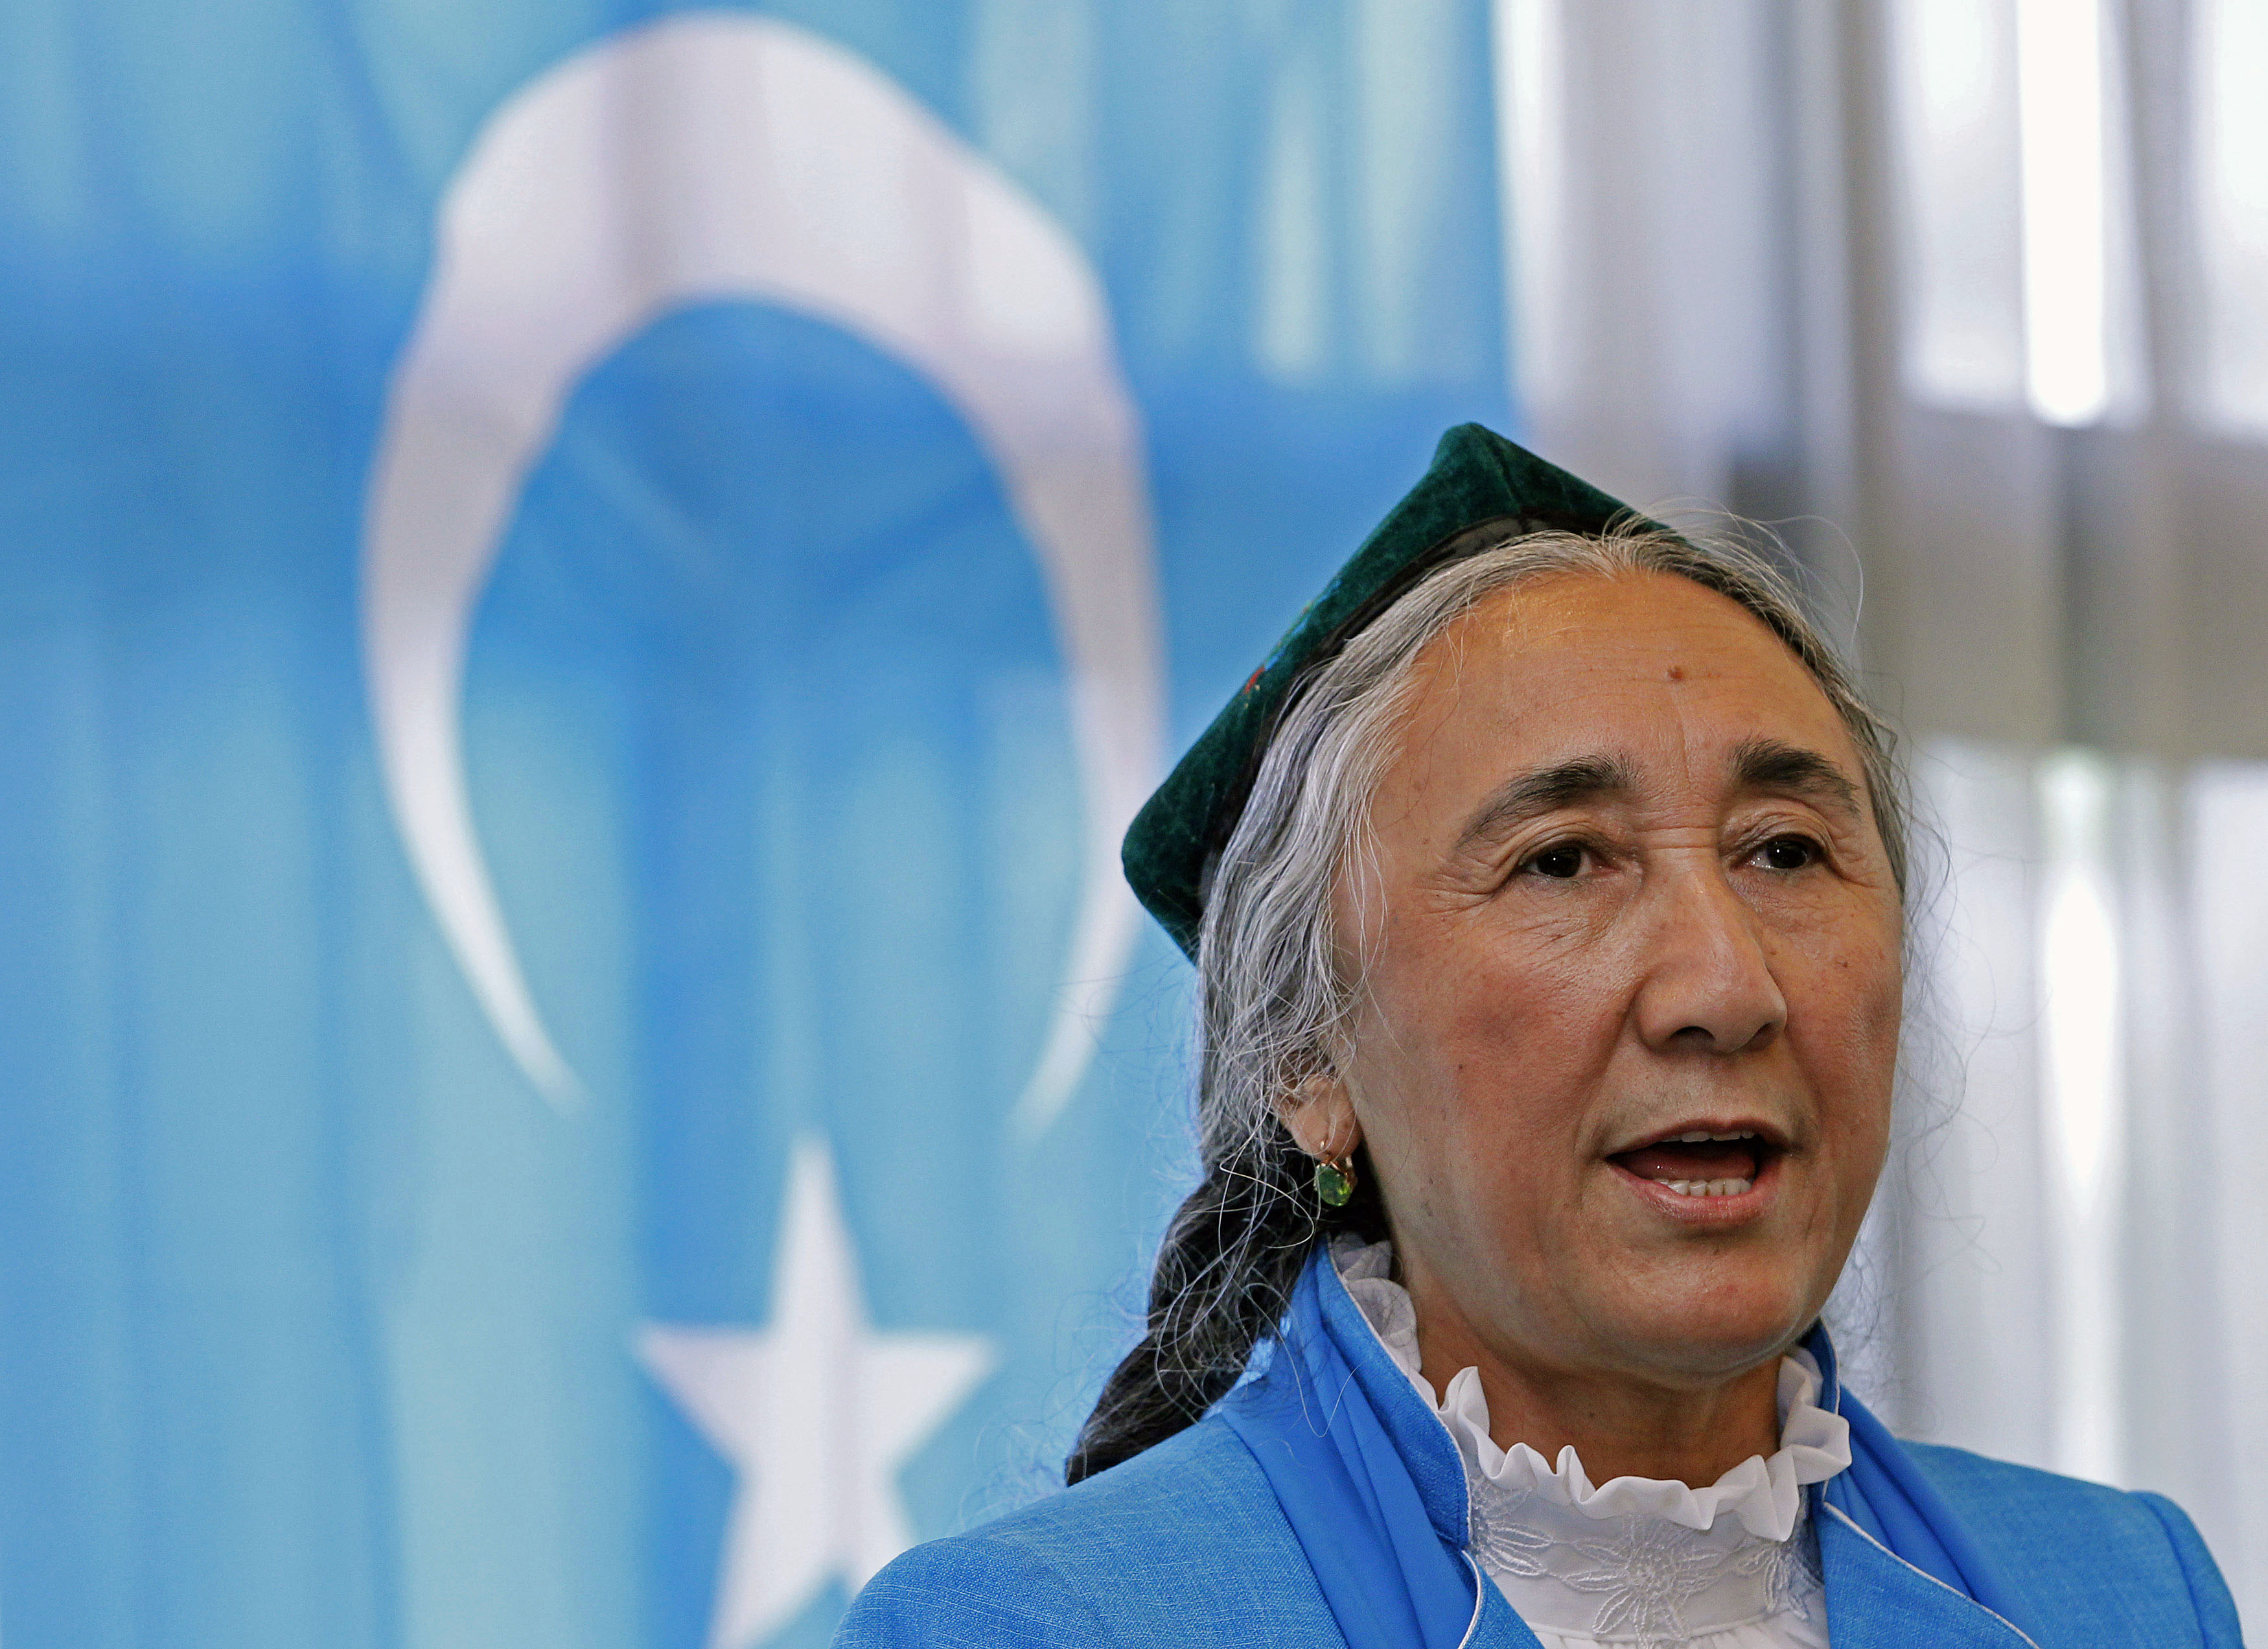 Uighur leader Rebiya Kadeer delivers a speech in front of a East Turkestan flag at the fourth General Assembly of the World Uighur Congress in Tokyo, May 14, 2012.